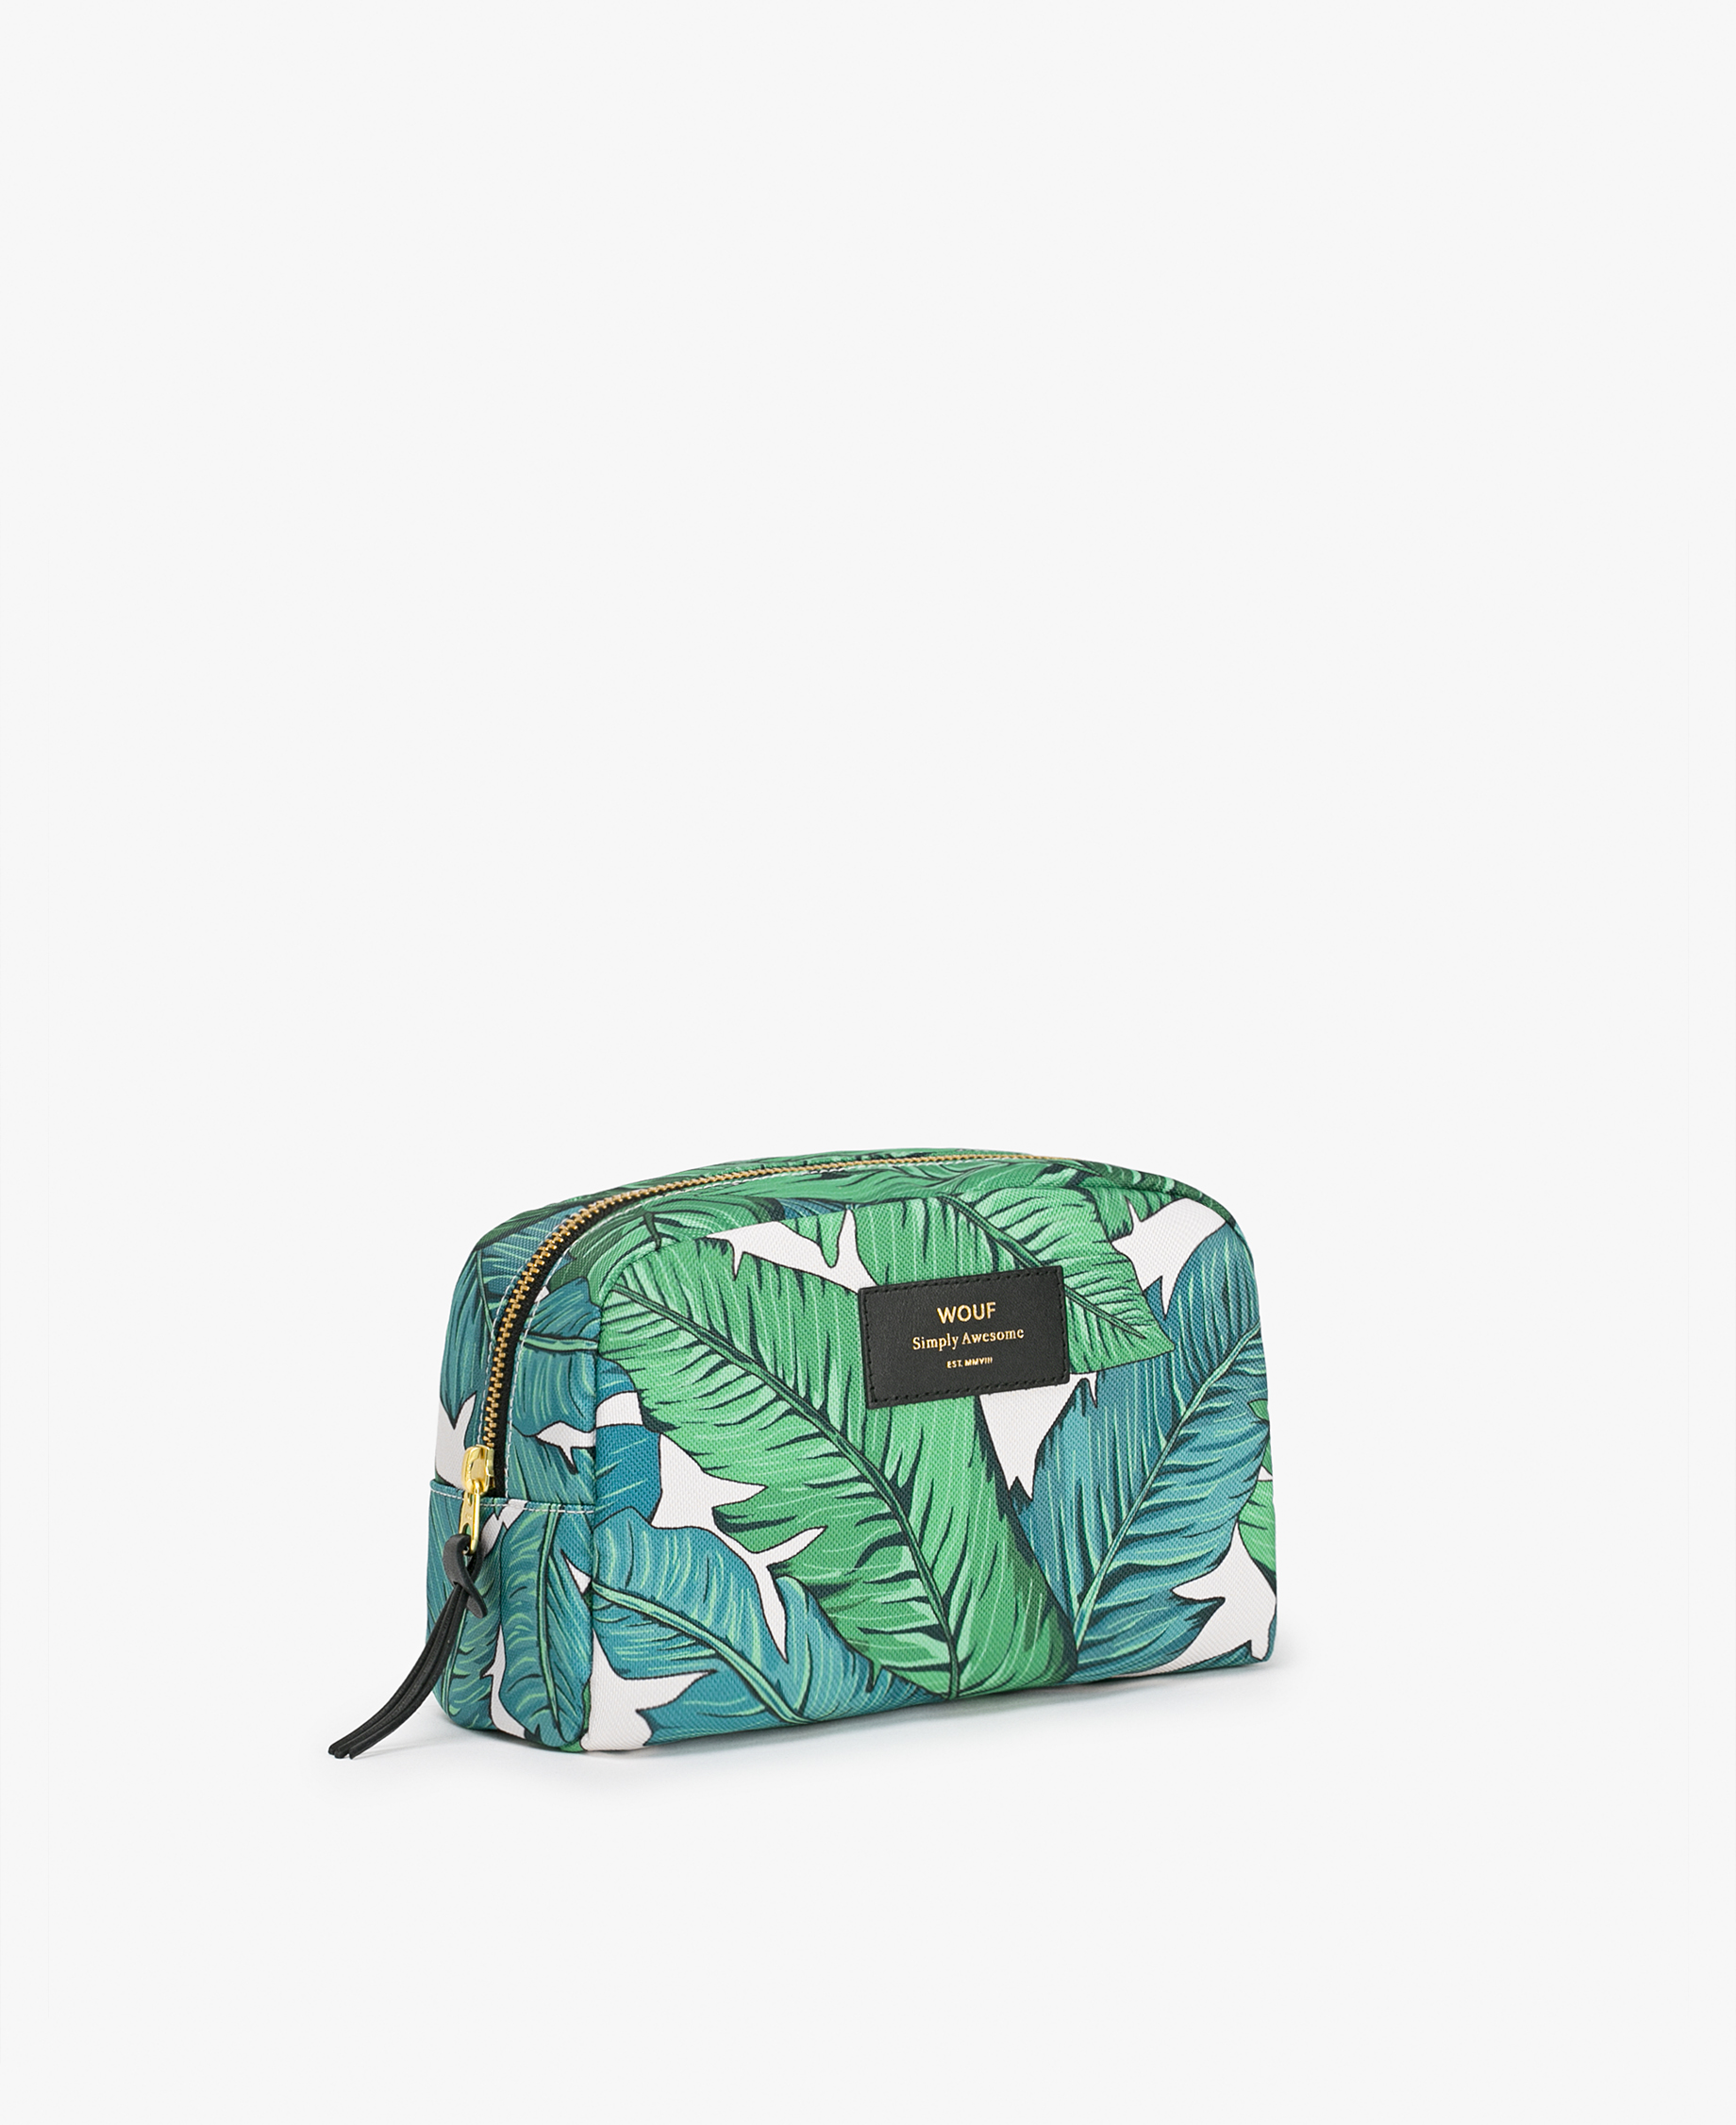 woman's toiletry bag in white with green leaves